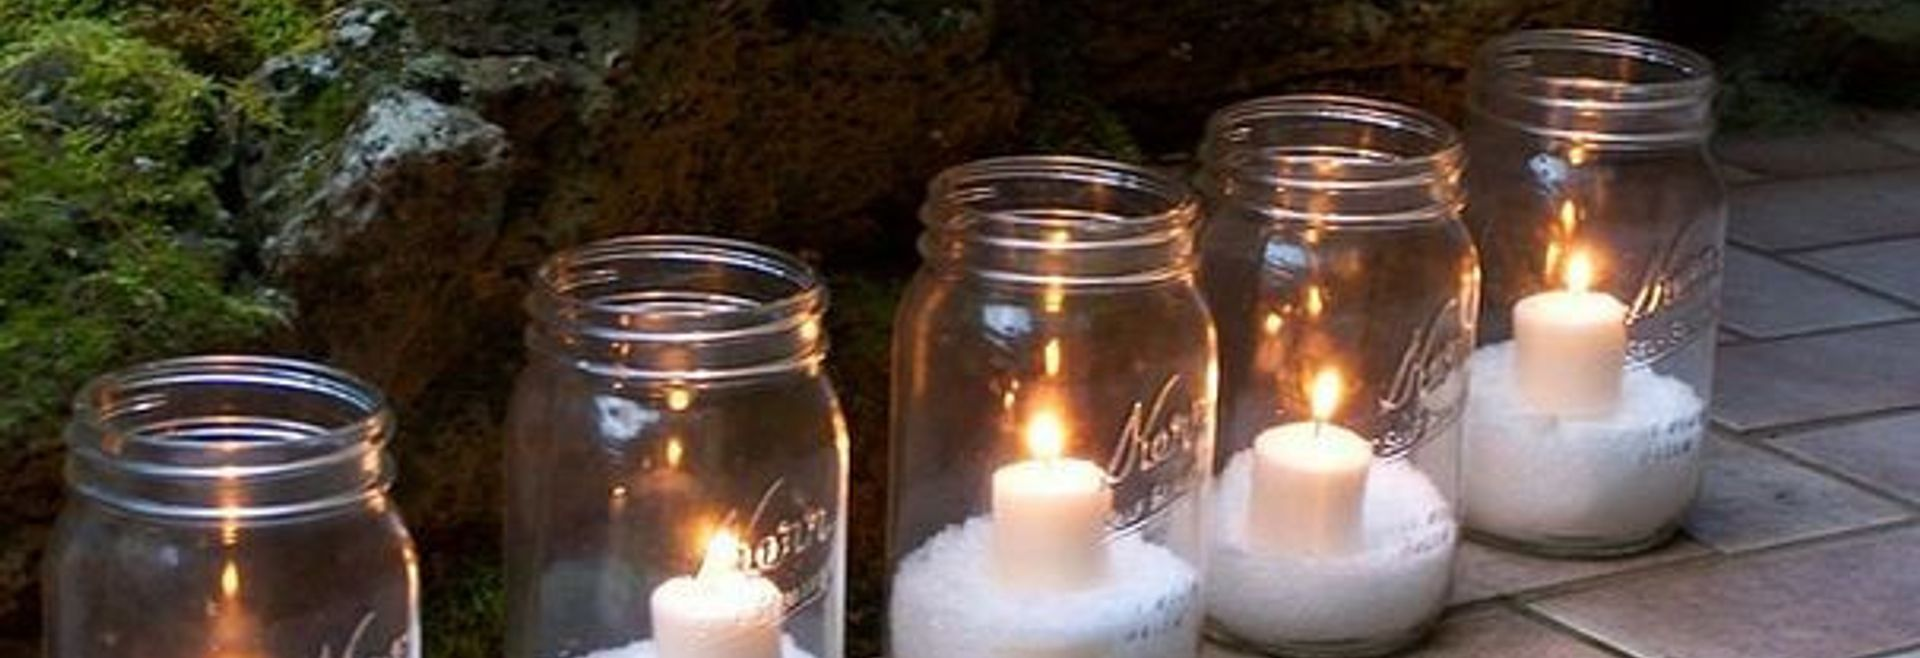 5 mason jar luminarias lined up